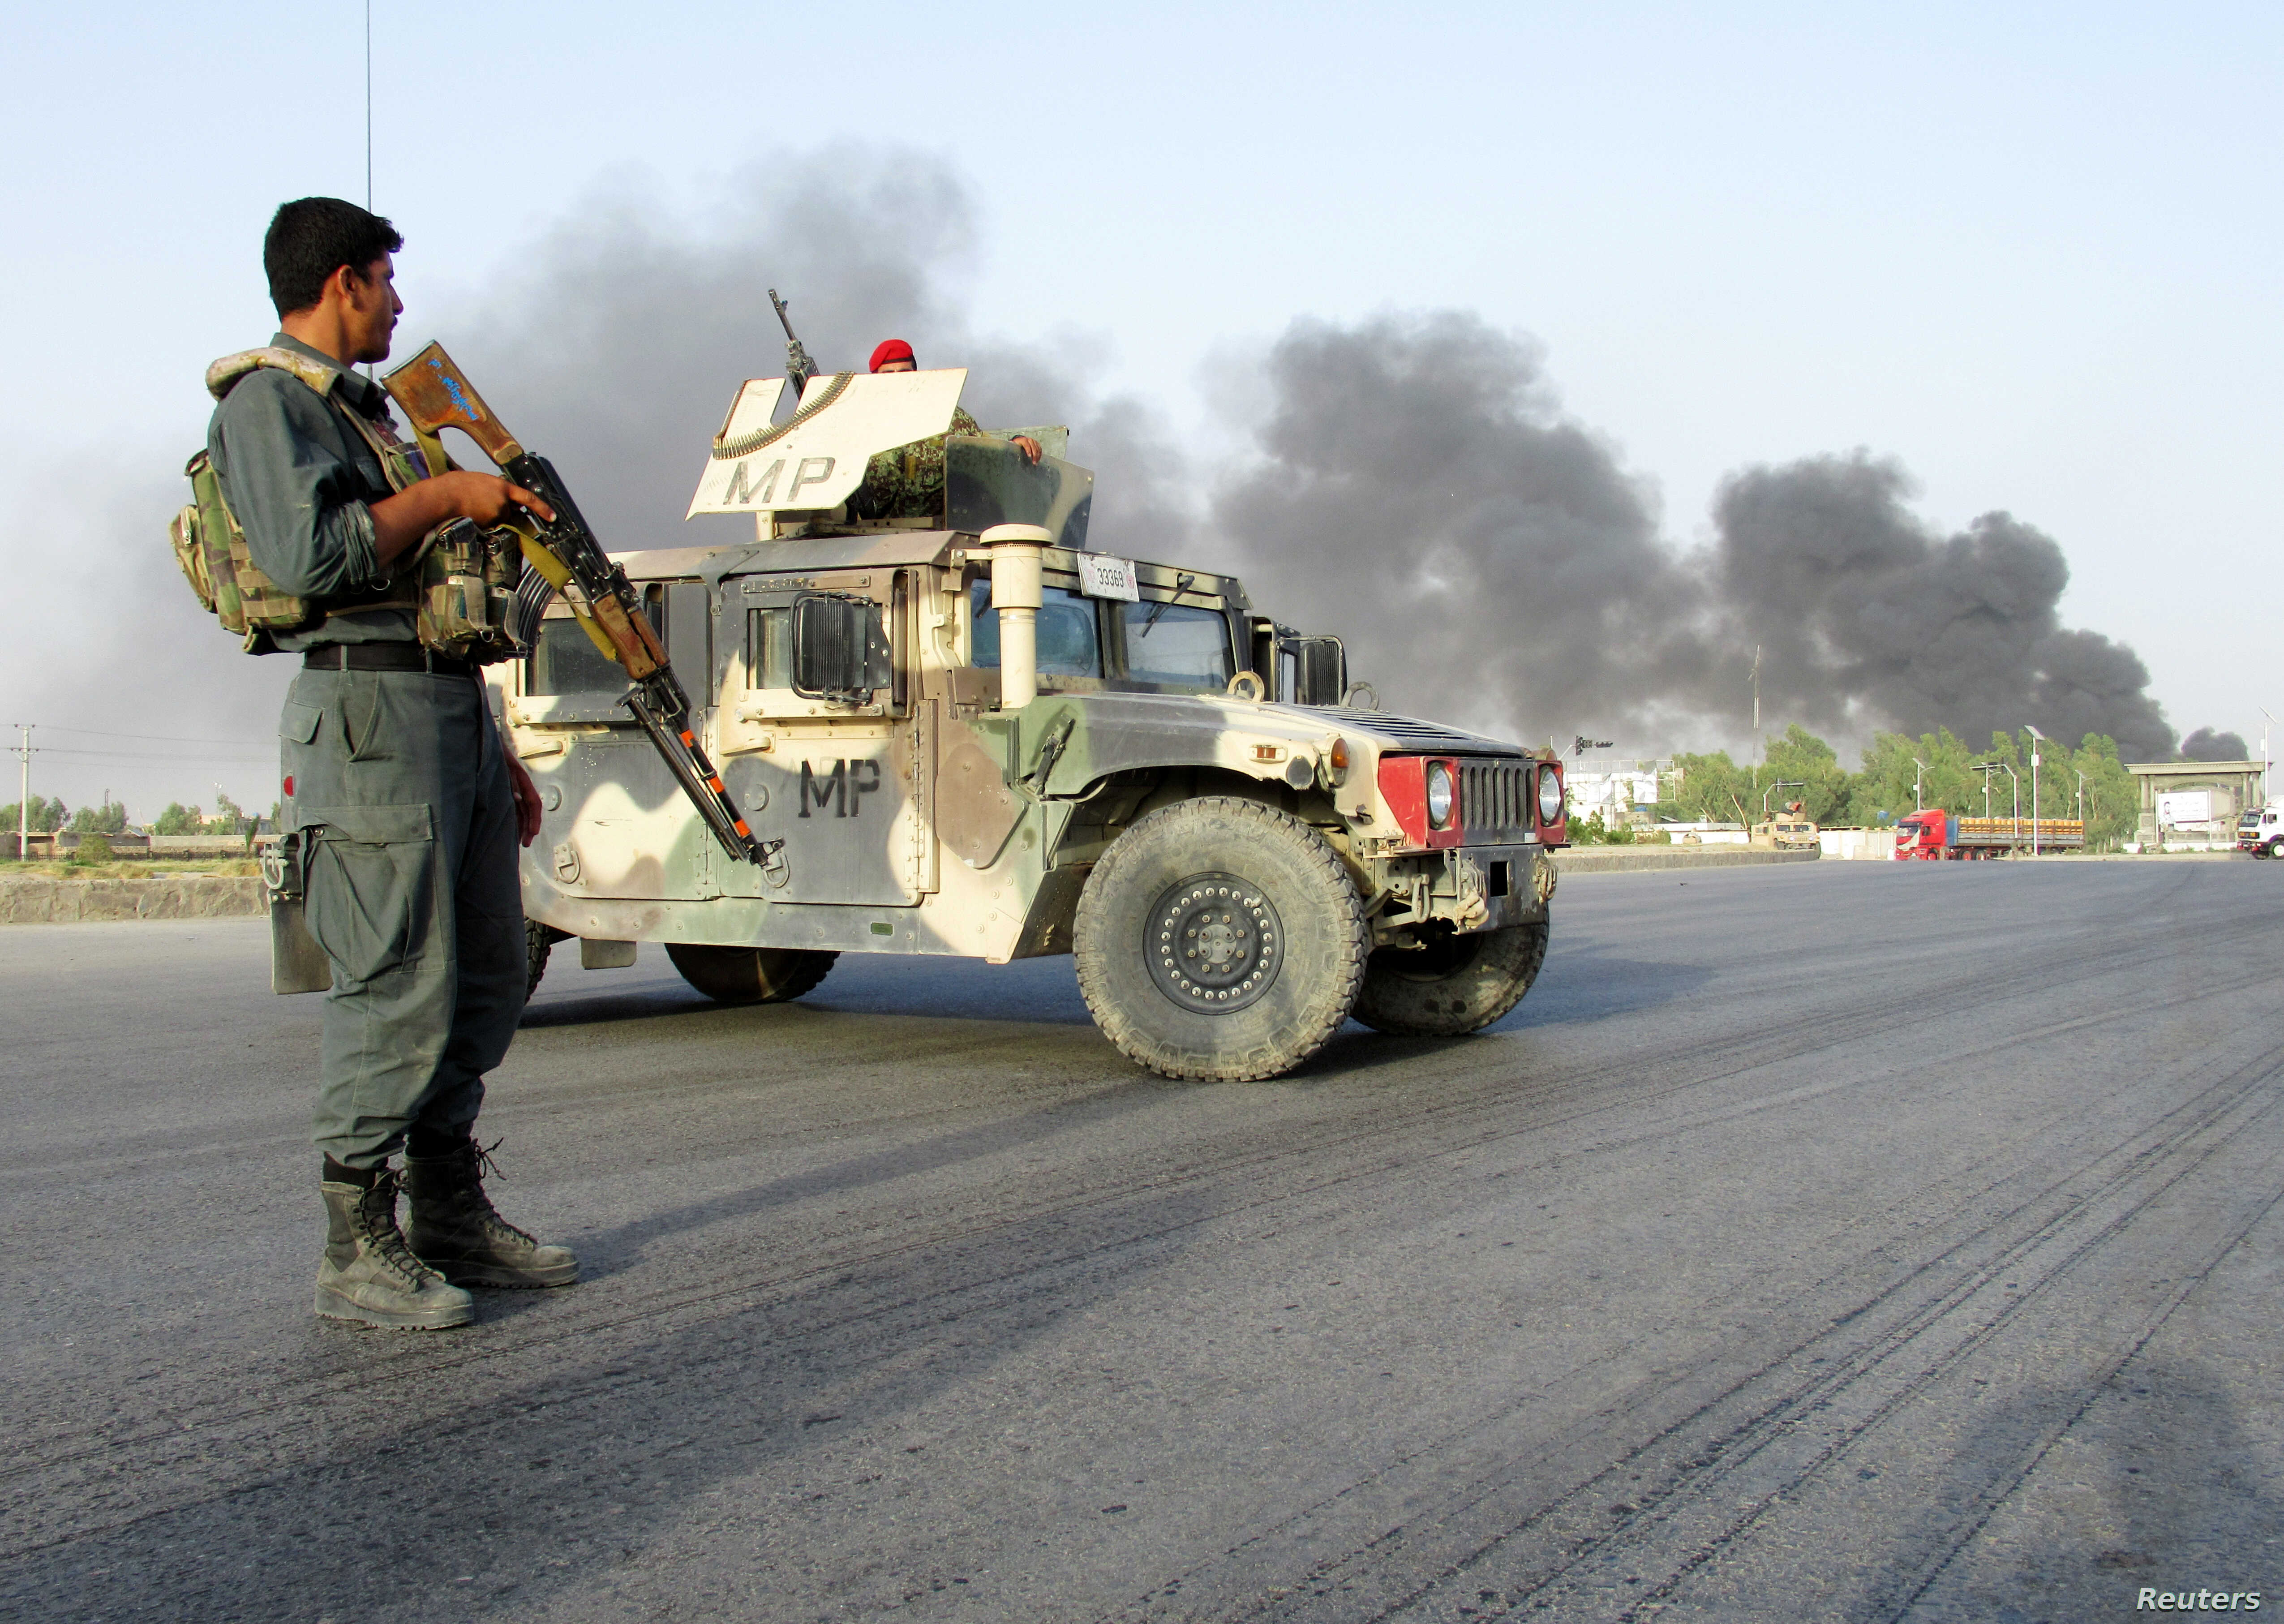 Vehicle bomb explodes at gate of police headquarters in Afghanistan's Kandahar